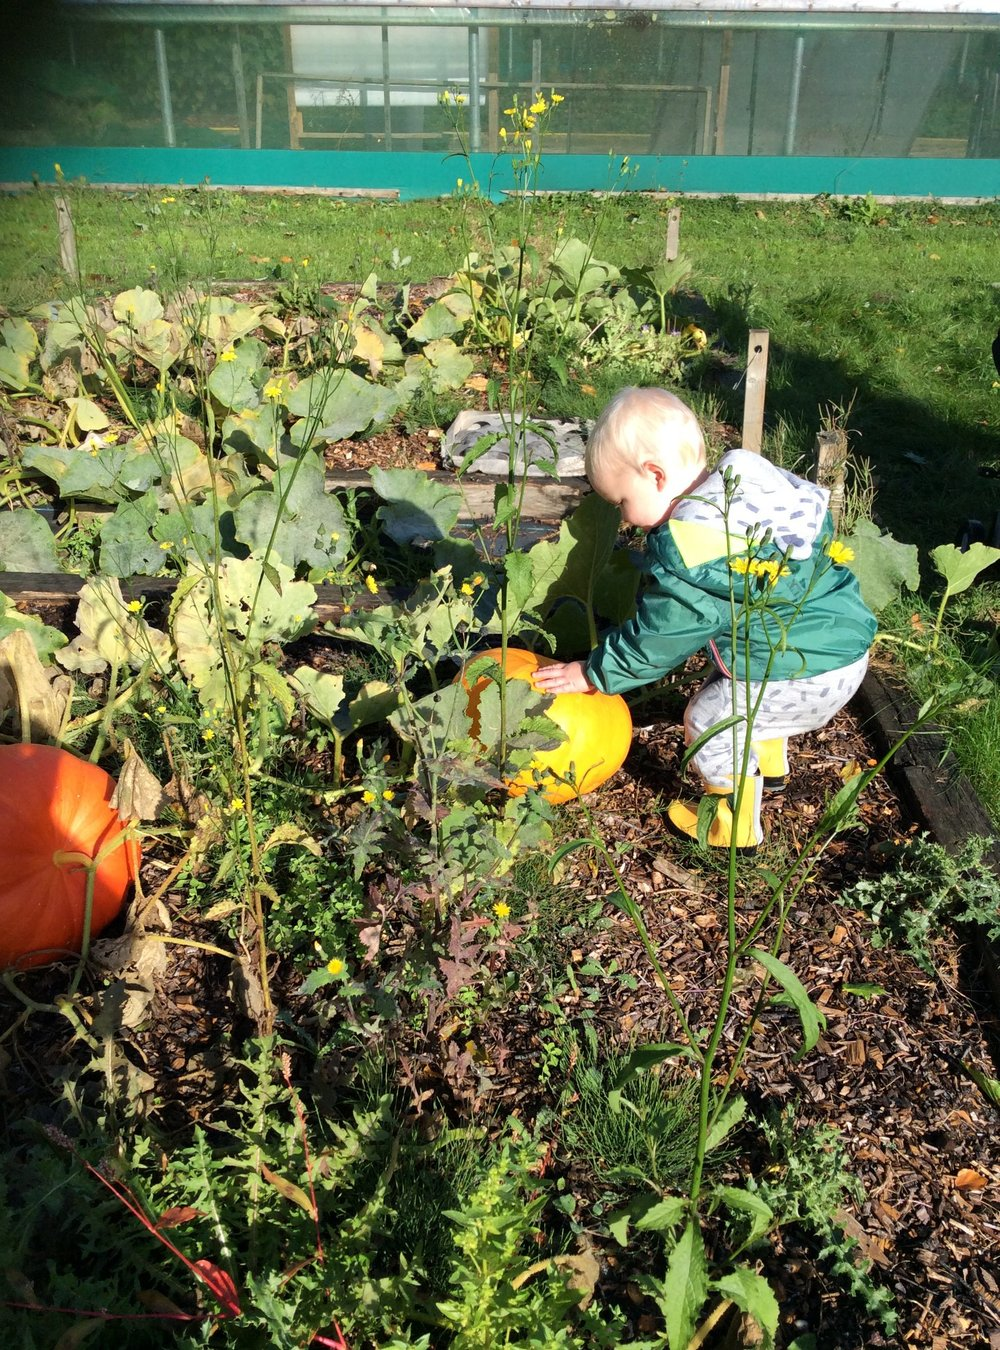 Harvesting at Kindergarten